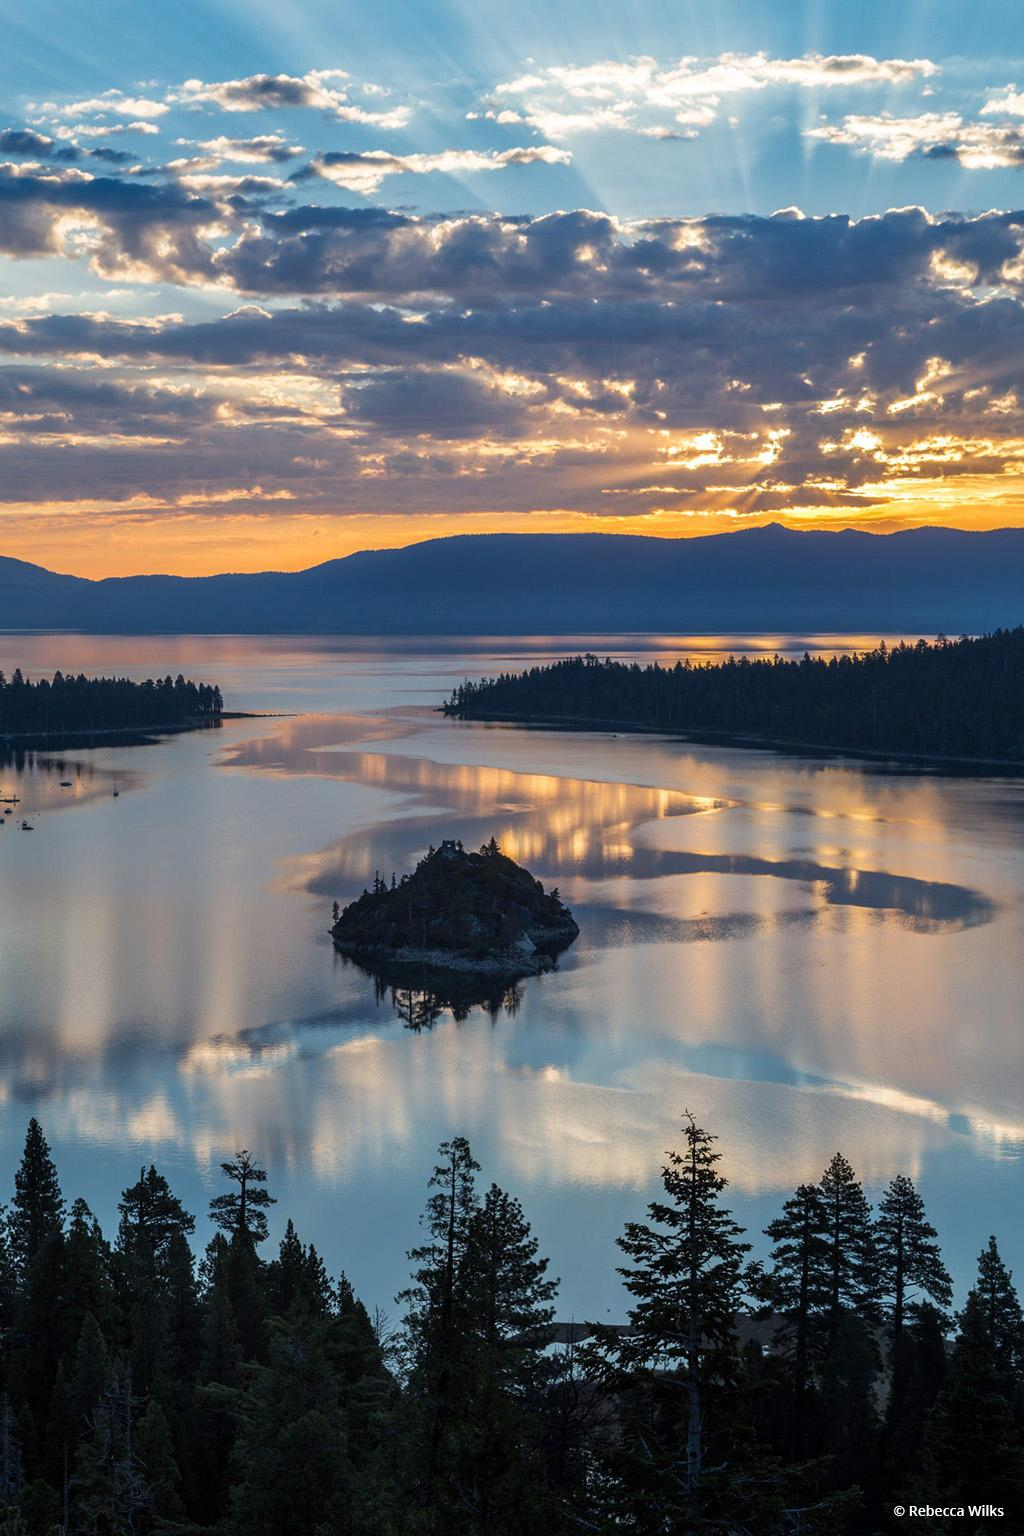 """Today's Photo Of The Day is """"Emerald Bay Sunrise"""" by Rebecca Wilks. Location: Lake Tahoe, California."""